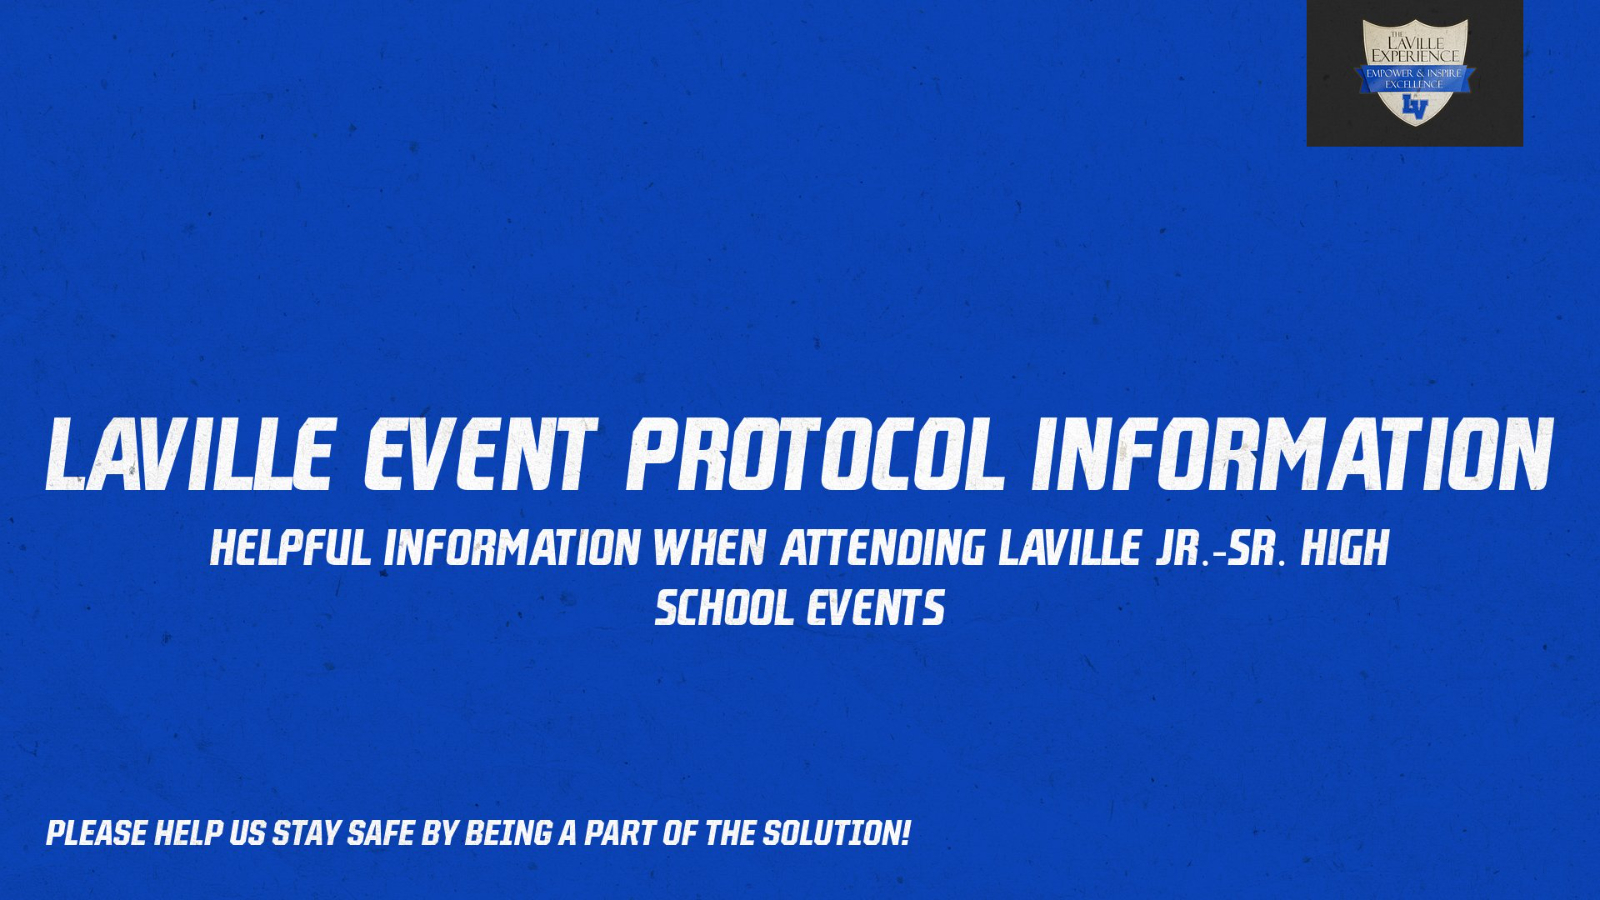 LaVille Event Protocol Event Information